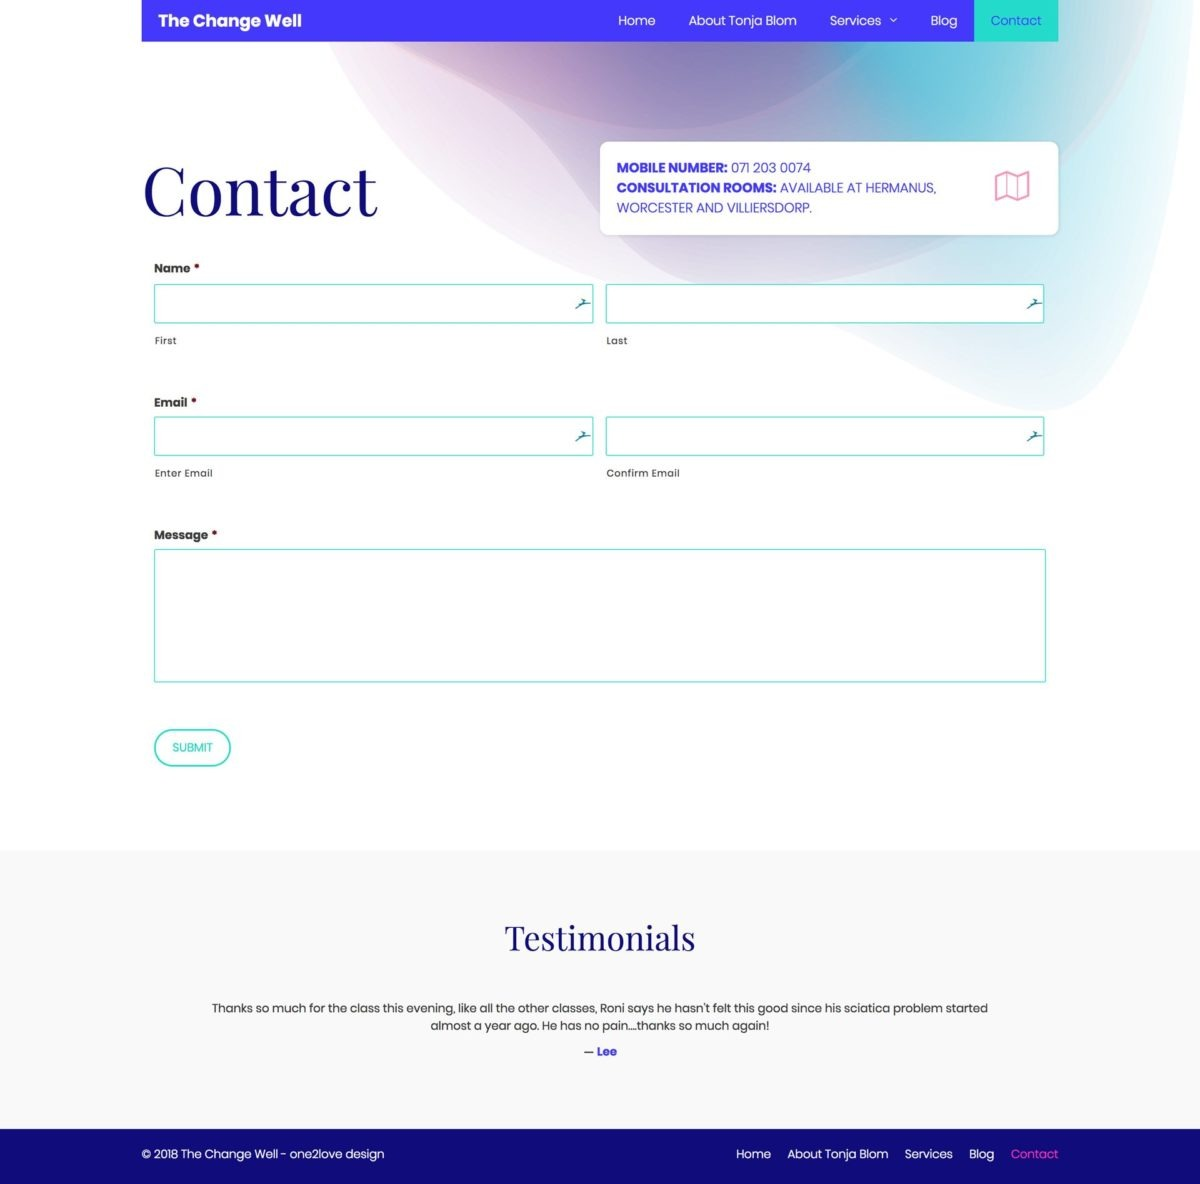 a contact form to allow the visitor to contact the owner